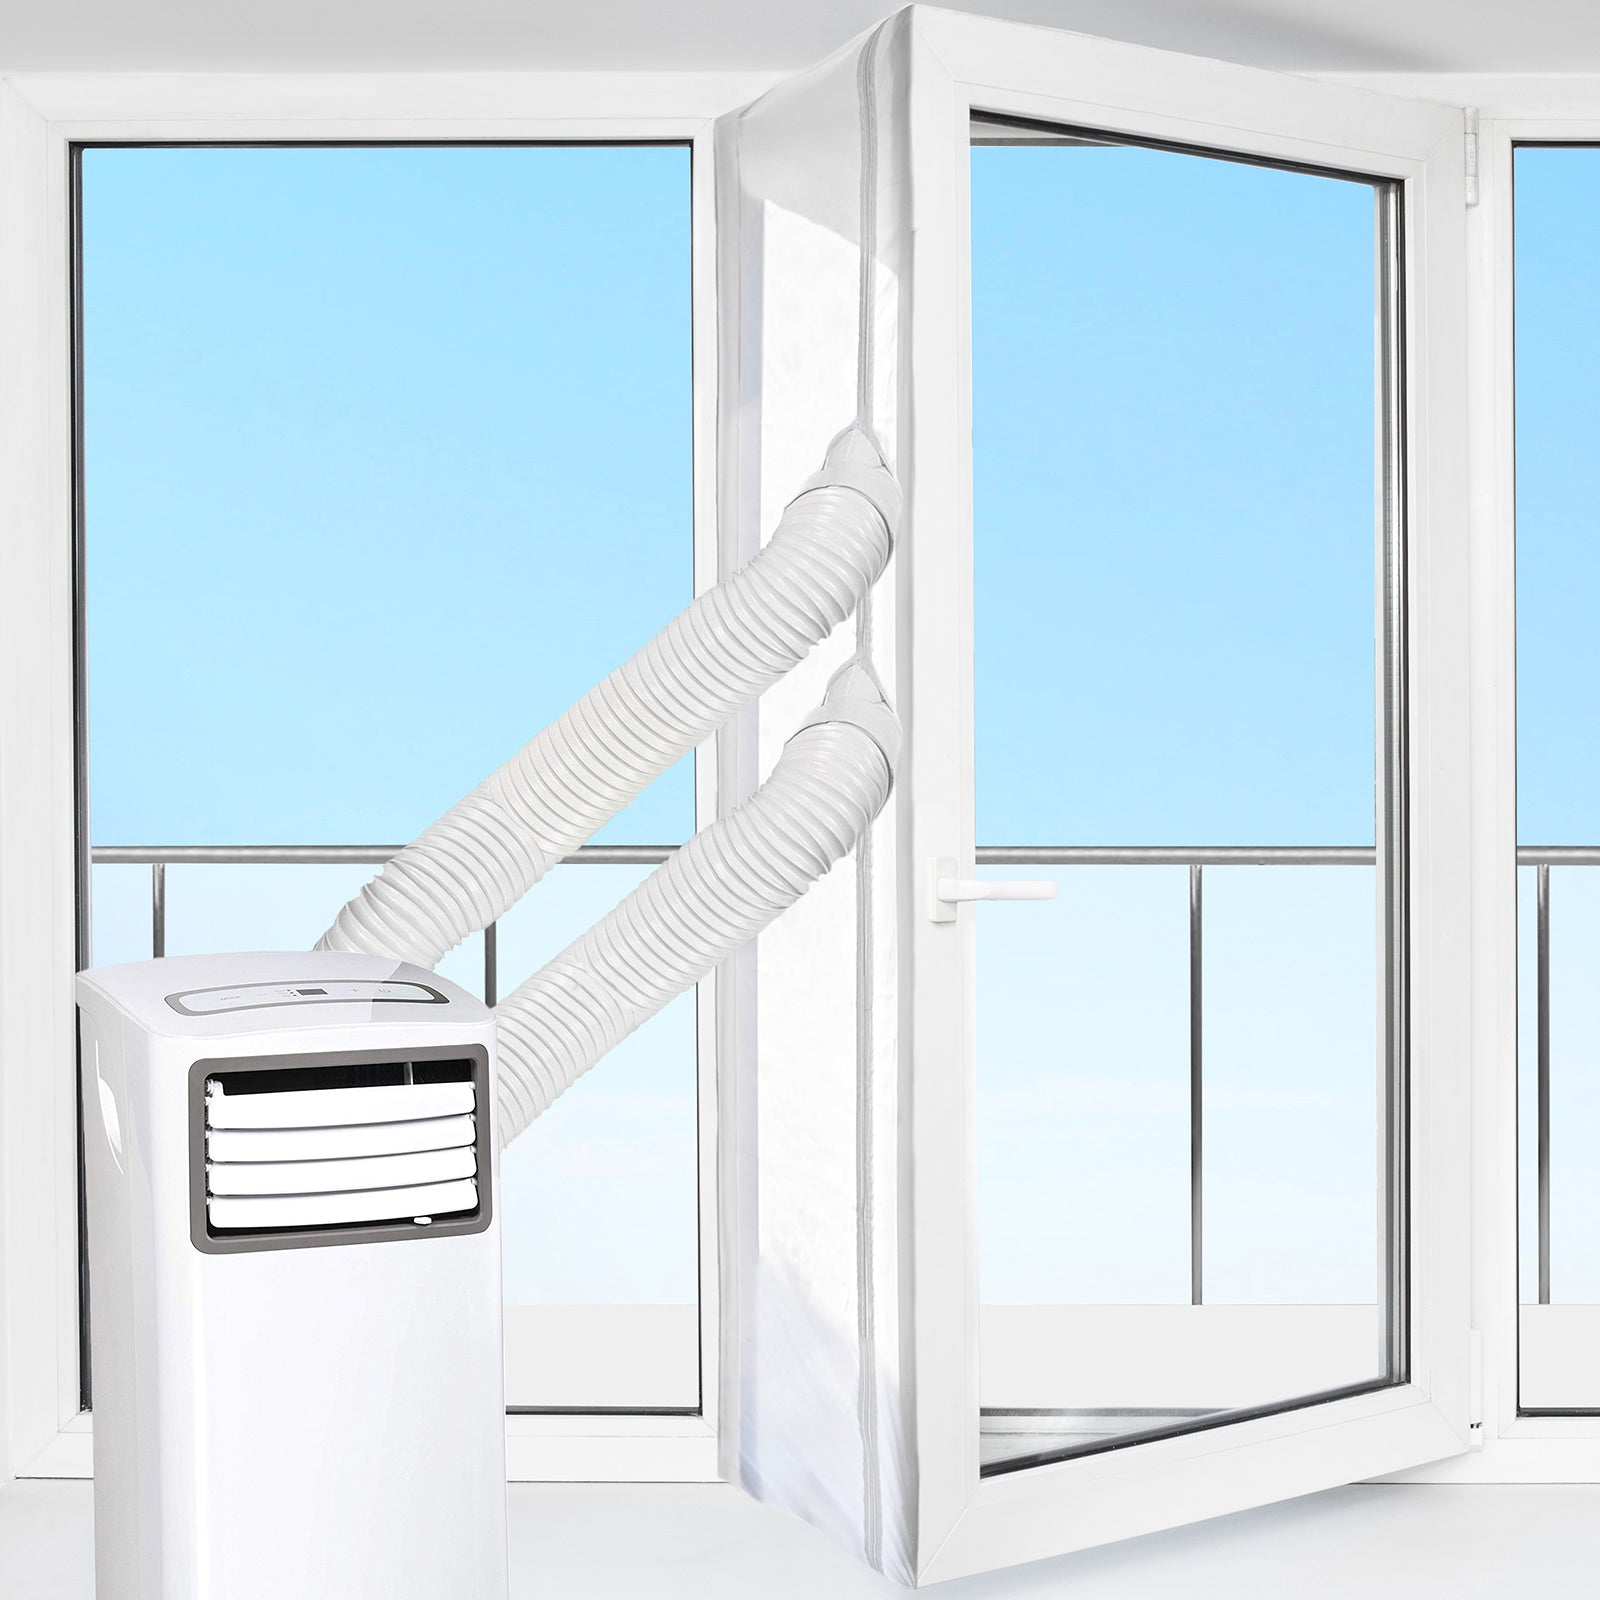 HOOMEE | Window Seal Kit for Portable Air Conditioner | Airlock works with every mobile Air-Conditioning Unit - Works both with Outward and Inward Opening Windows (Model #AL003)